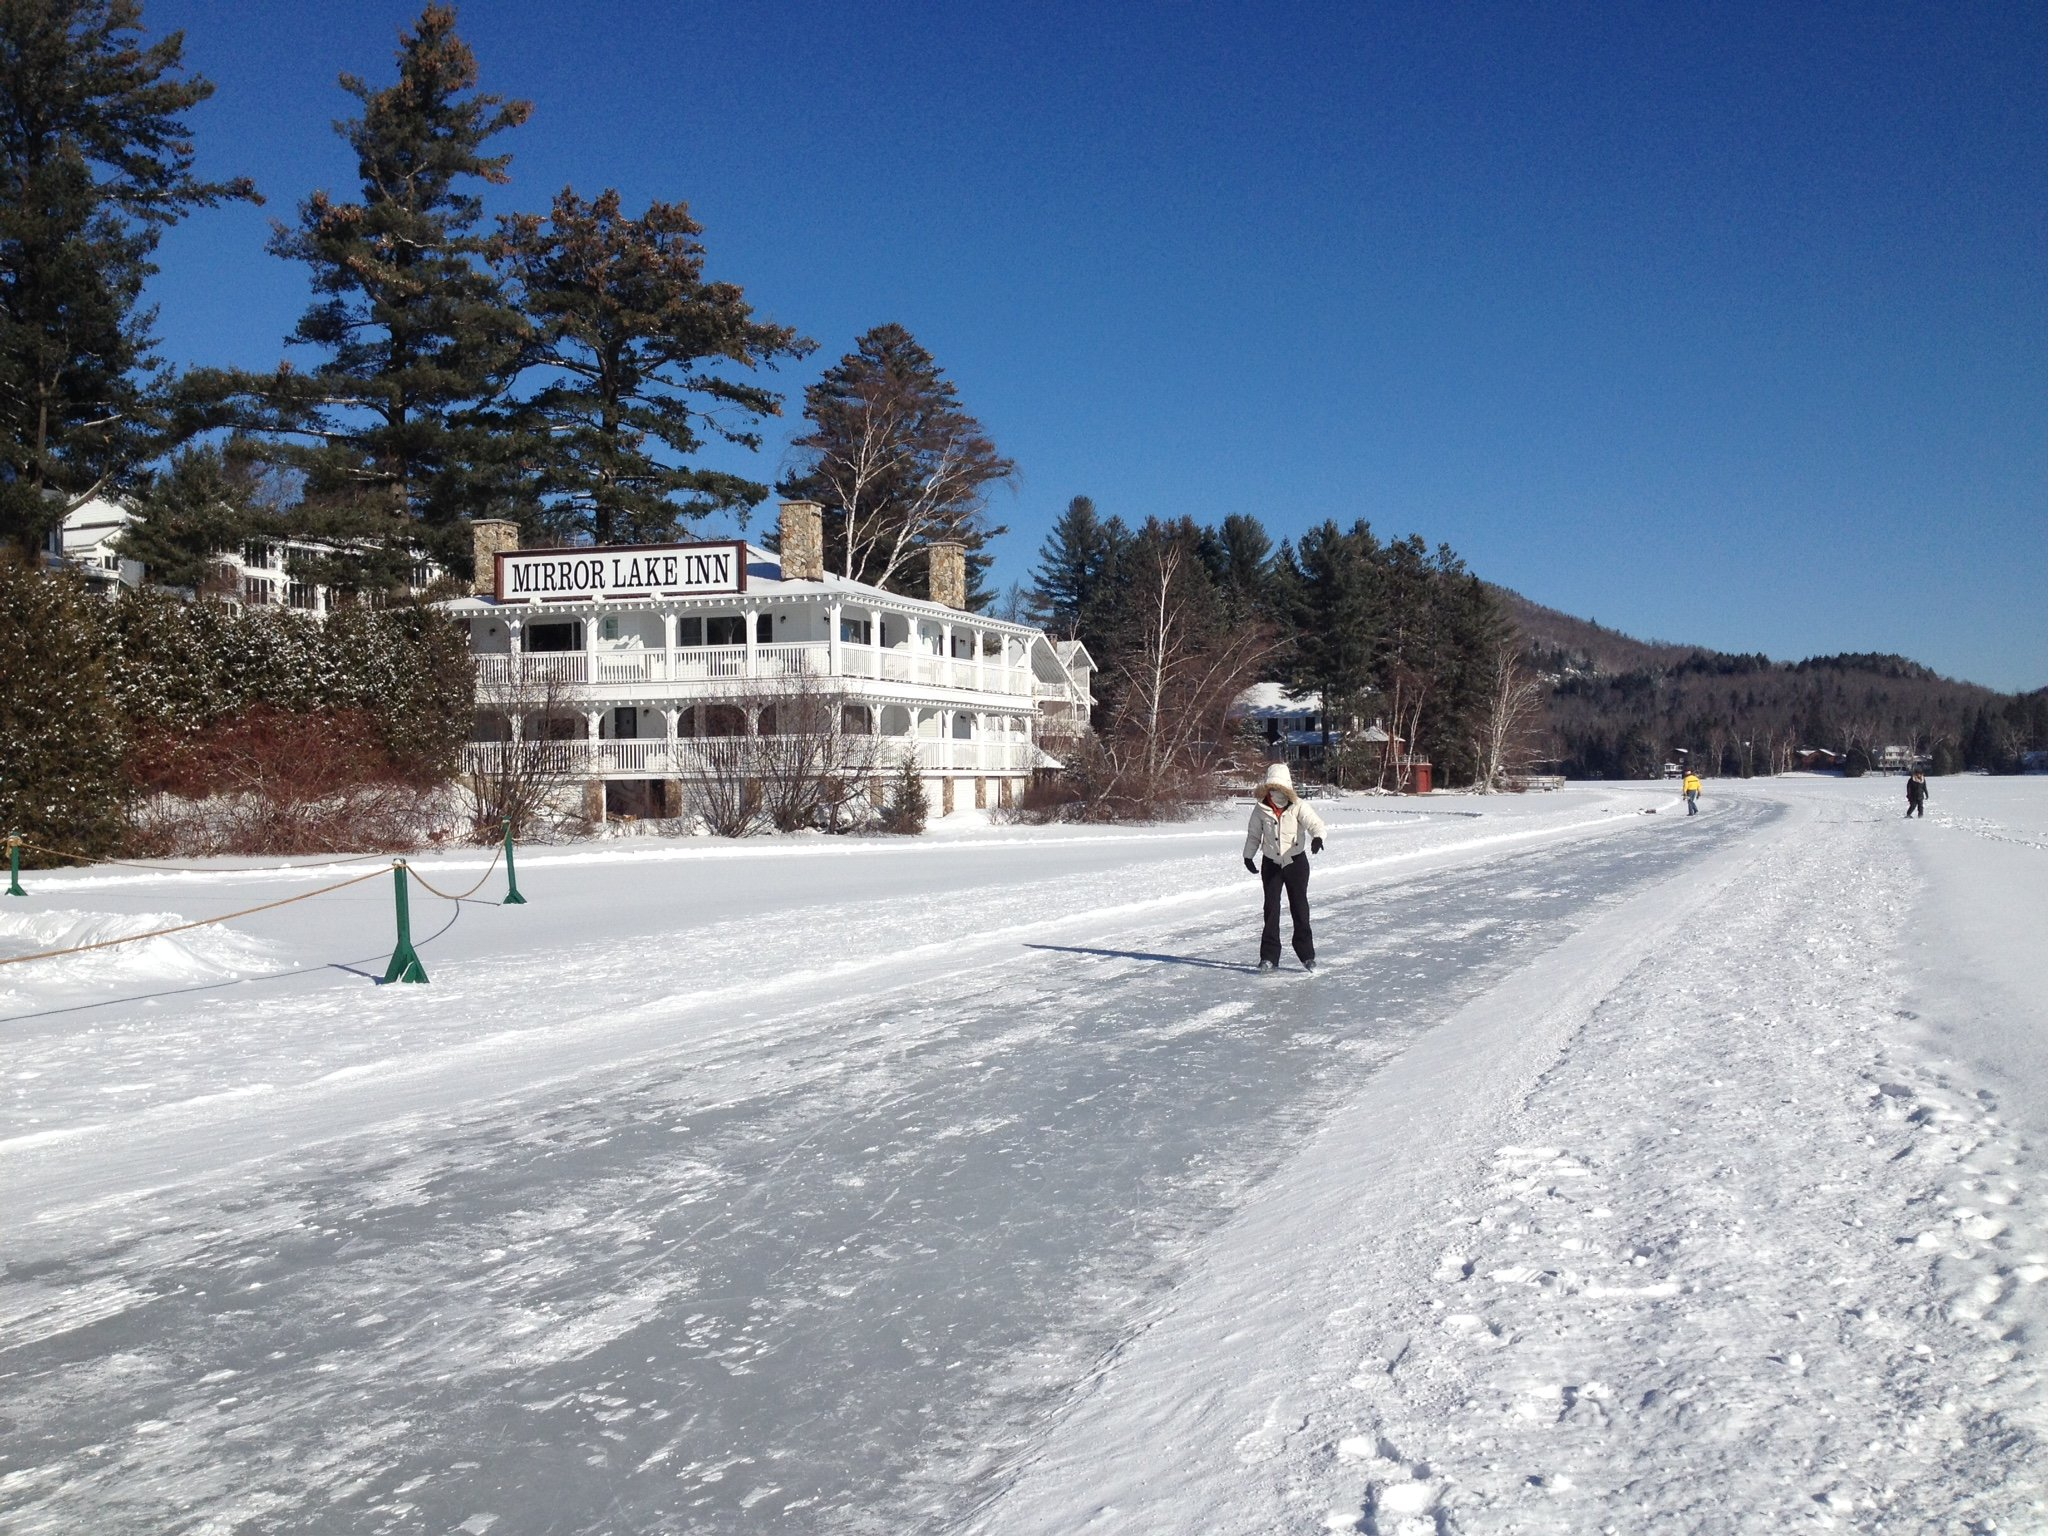 Woman skating solo on lake path in front of hotel